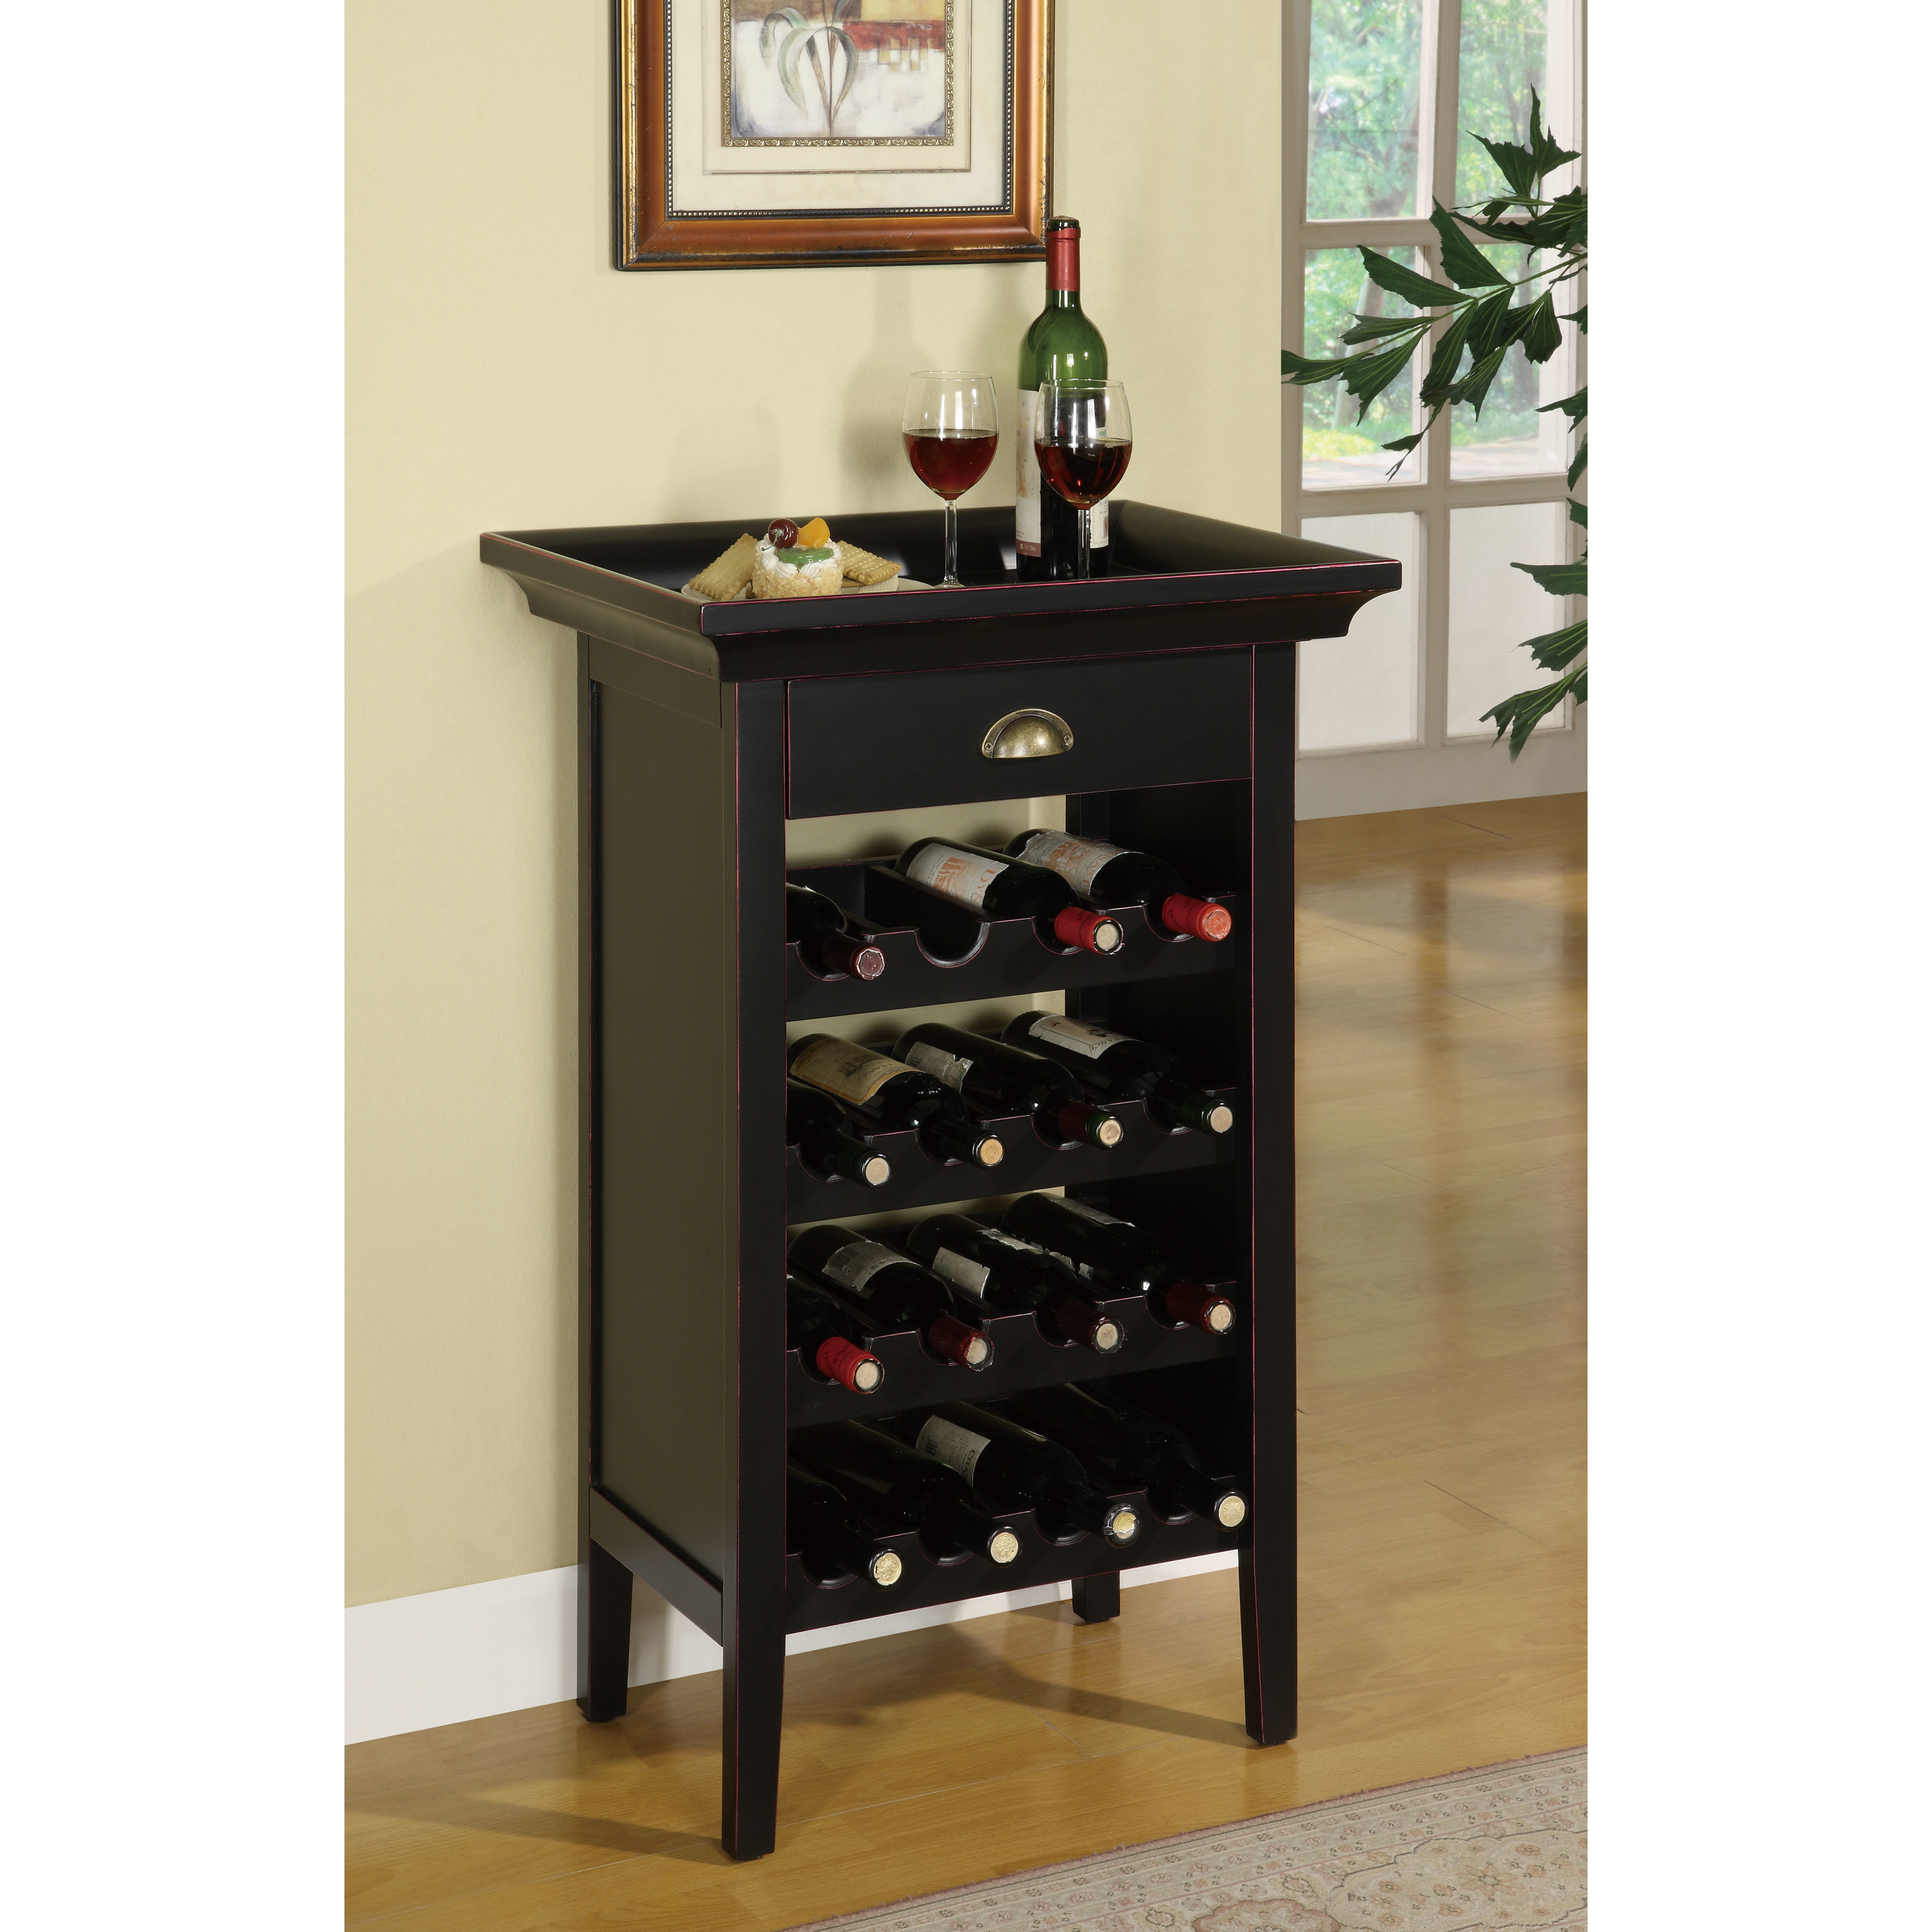 Best ideas about Cabinet With Wine Rack . Save or Pin Charlton Home Beamish 16 Bottle Floor Wine Rack & Reviews Now.